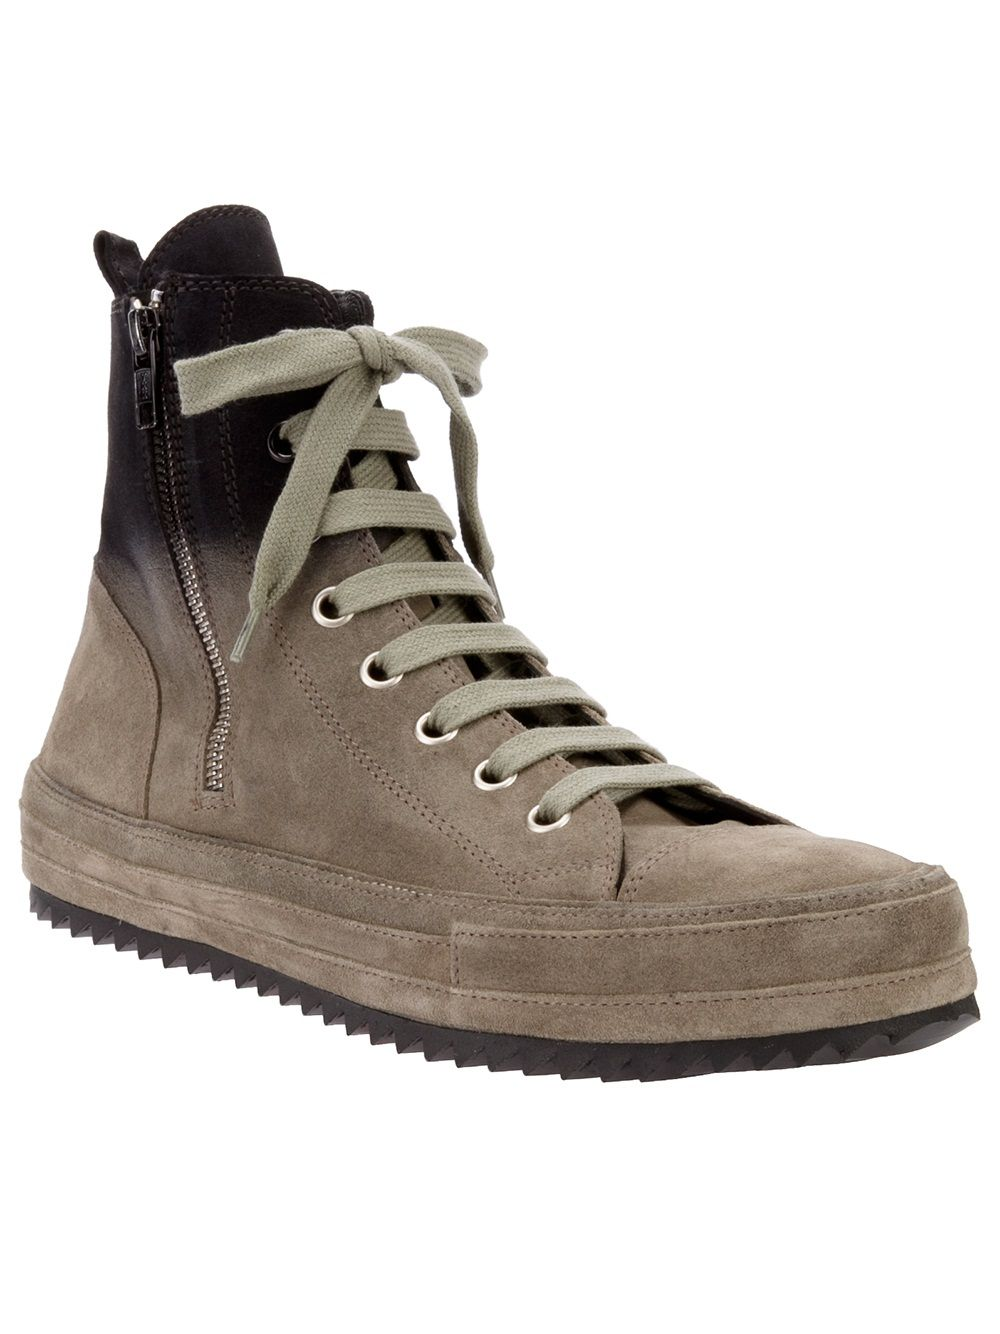 Khaki Back Zip High-Top Sneakers D by D itweiUTt